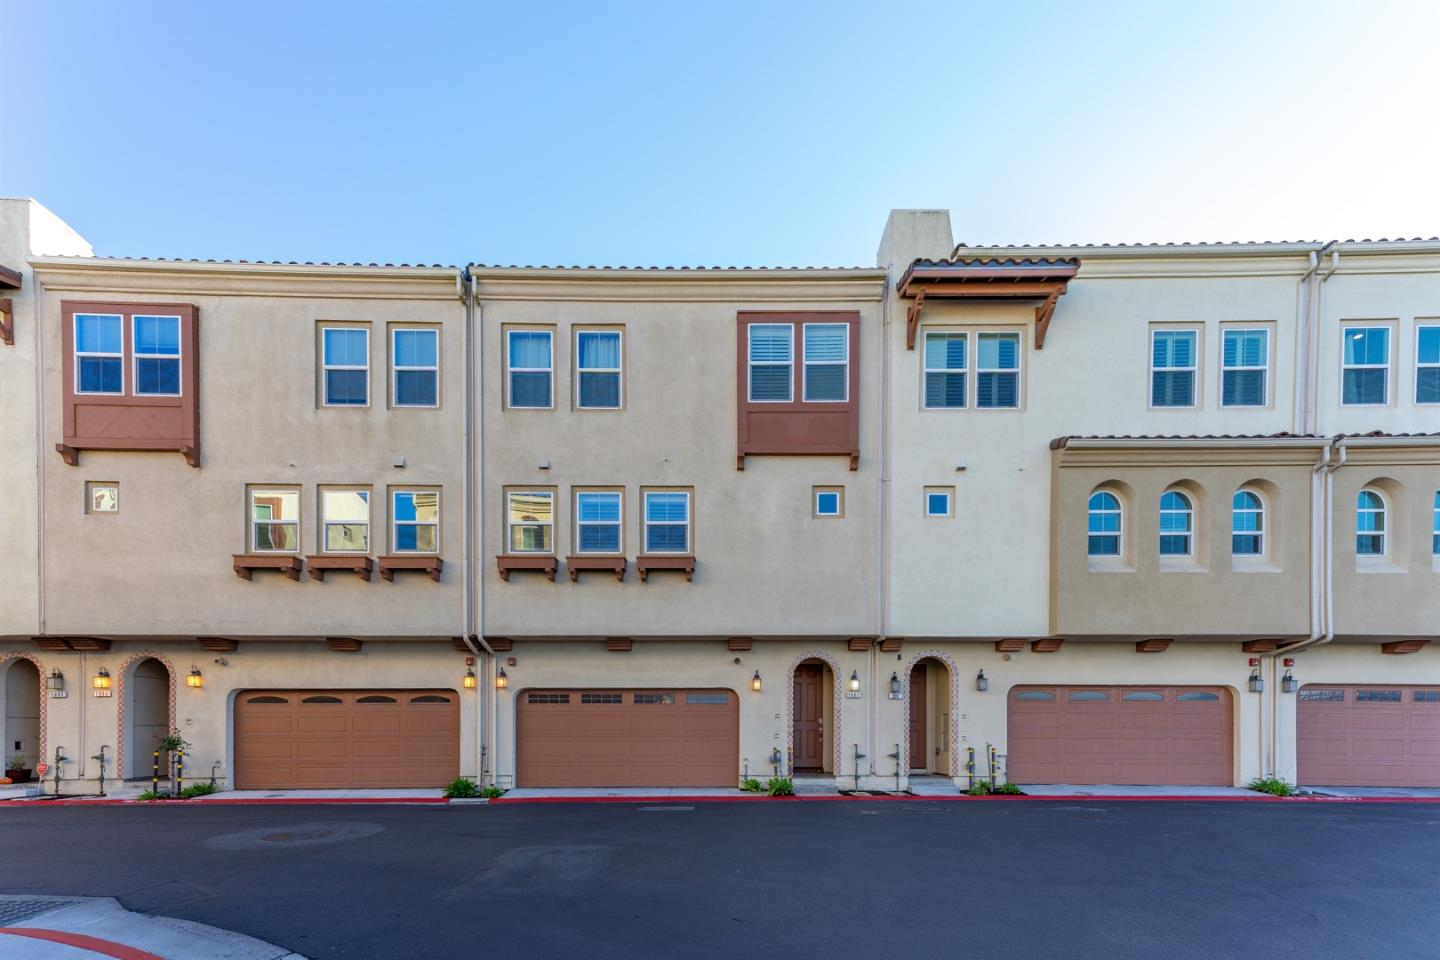 Gorgeous & Contemporary! This spectacular 3-level 3BD/2.5BA single family home in a gated private community w/breathtaking views built in 2017. Upon formal entrance, the 1st level of the home offers 2 car side by side garage and stairs to 2nd level. The 2nd level offers an open-concept living/dining room, gourmet kitchen, and a powder room. The kitchen features a large island w/ stone countertops, professional-grade KitchenAid appliances, modern cabinetry, walk-in pantry & lovely windows with views to sunset. Living room with sliding glass doors that open to an outdoor patio. The 3rd level offers master suite retreat, w/ a grand, spa-like bathtub w/double vanity & walk-in shower, plus a walk-in closet & 2 bedrooms spectacular views, 1 bath & full laundry room w/ washer & dryer. Property is equipped with a solar system, central A/C, security system, surround sound, & Smart Key. Close to shopping, library, Hwy 101 & 280, 5 minutes to BART & only 9 miles to the SF Financial District.